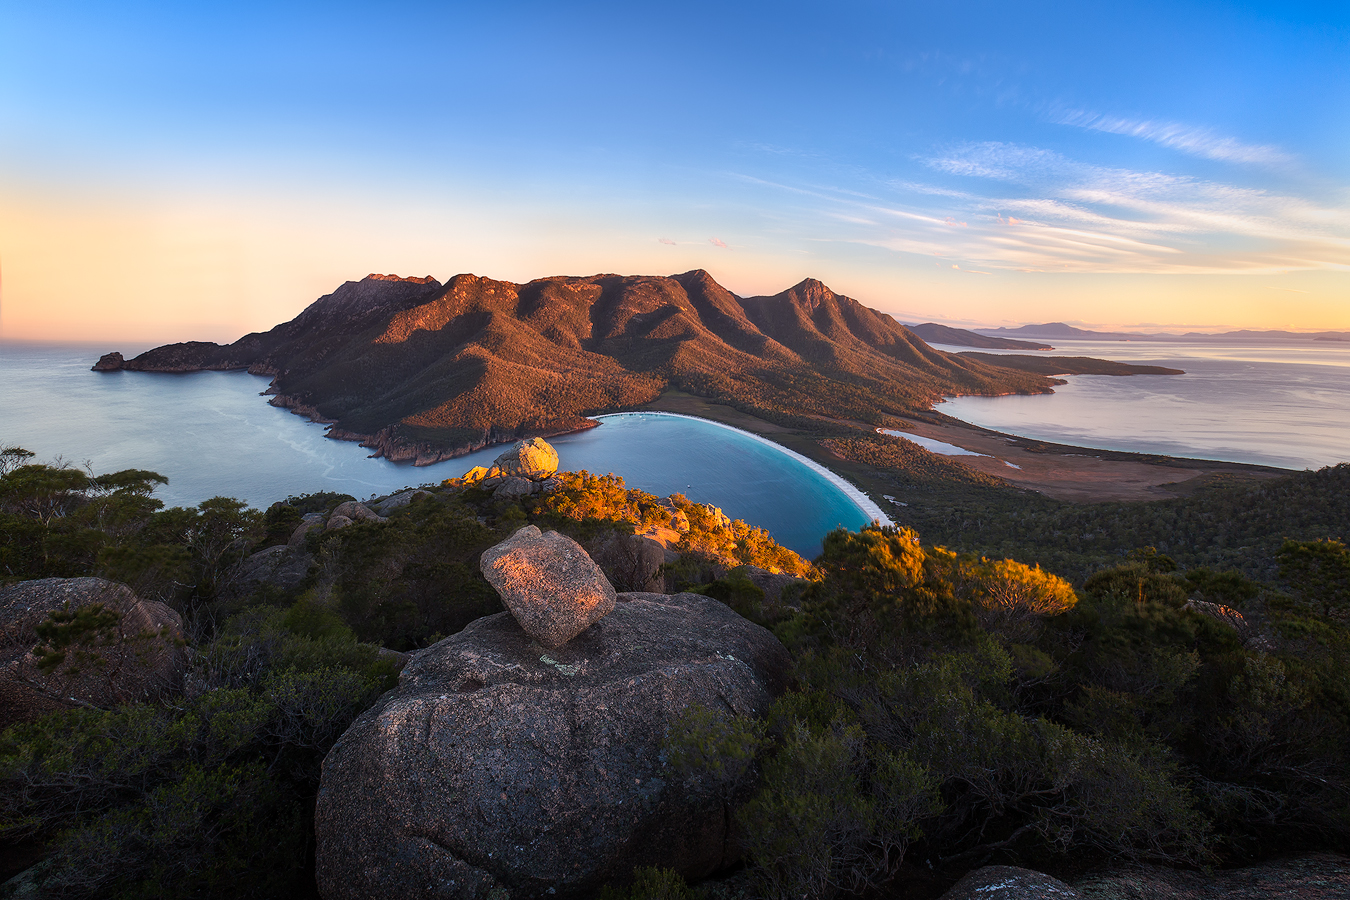 Tasmania Landscape Photography Tour - Freycinet National Park | We Are Raw Photography